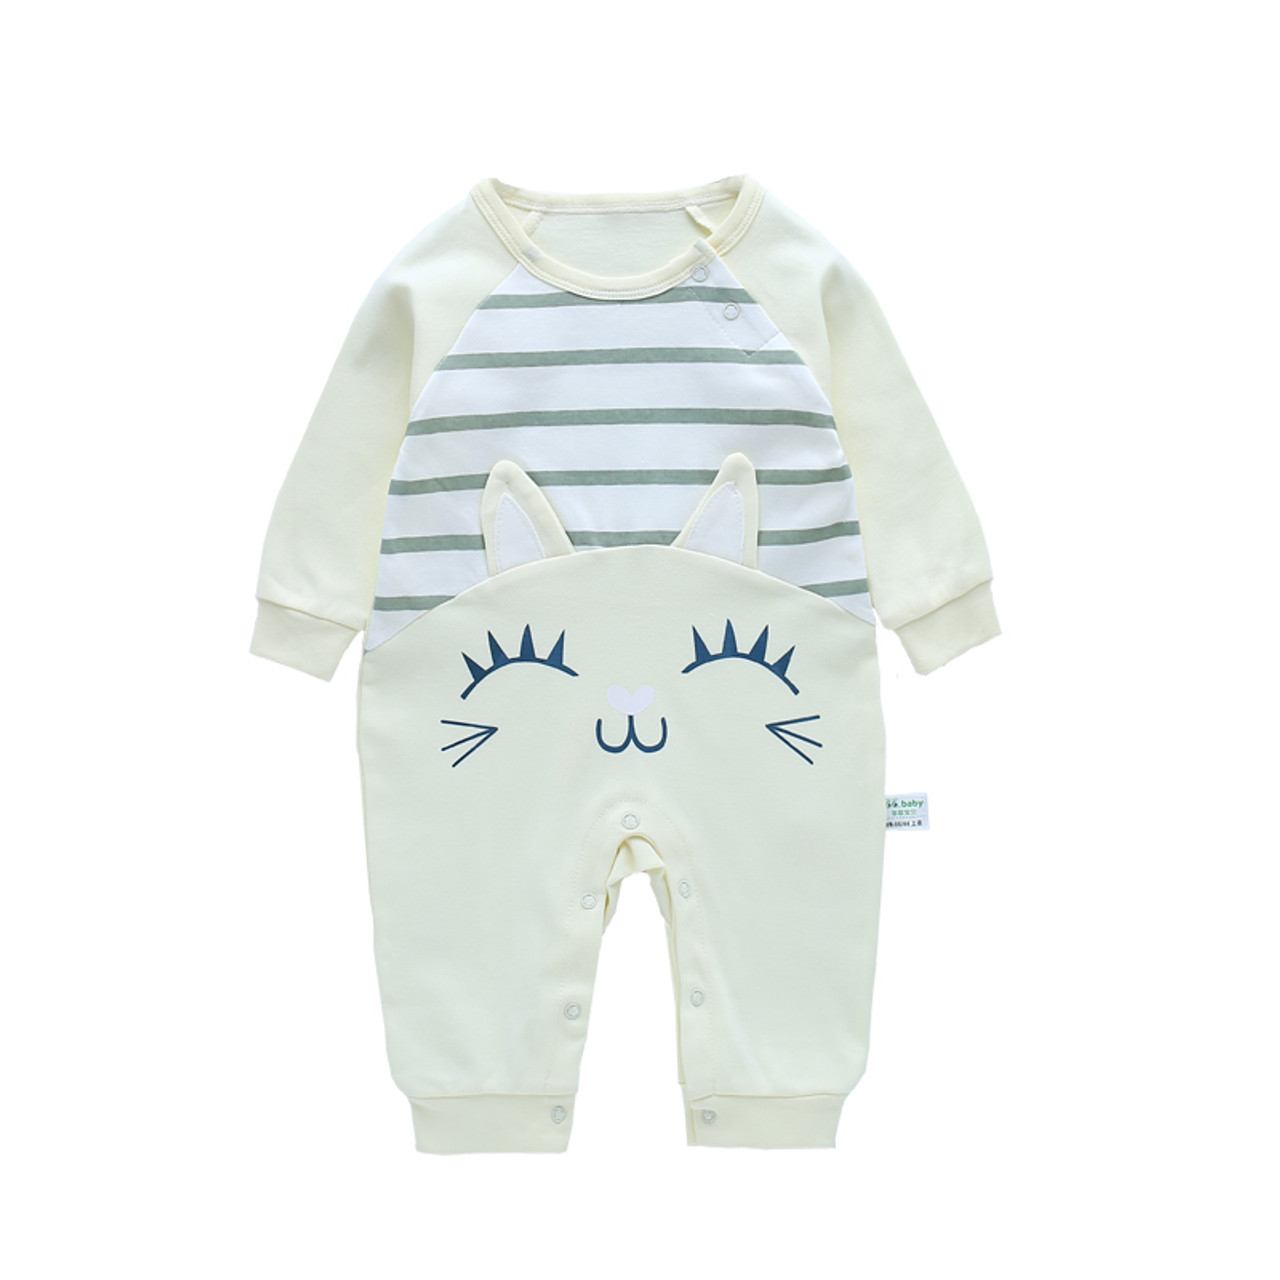 b0f926c4bc8c Infant New Born Baby Boy Rompers Baby Girl Rompers Clothes Overalls ...